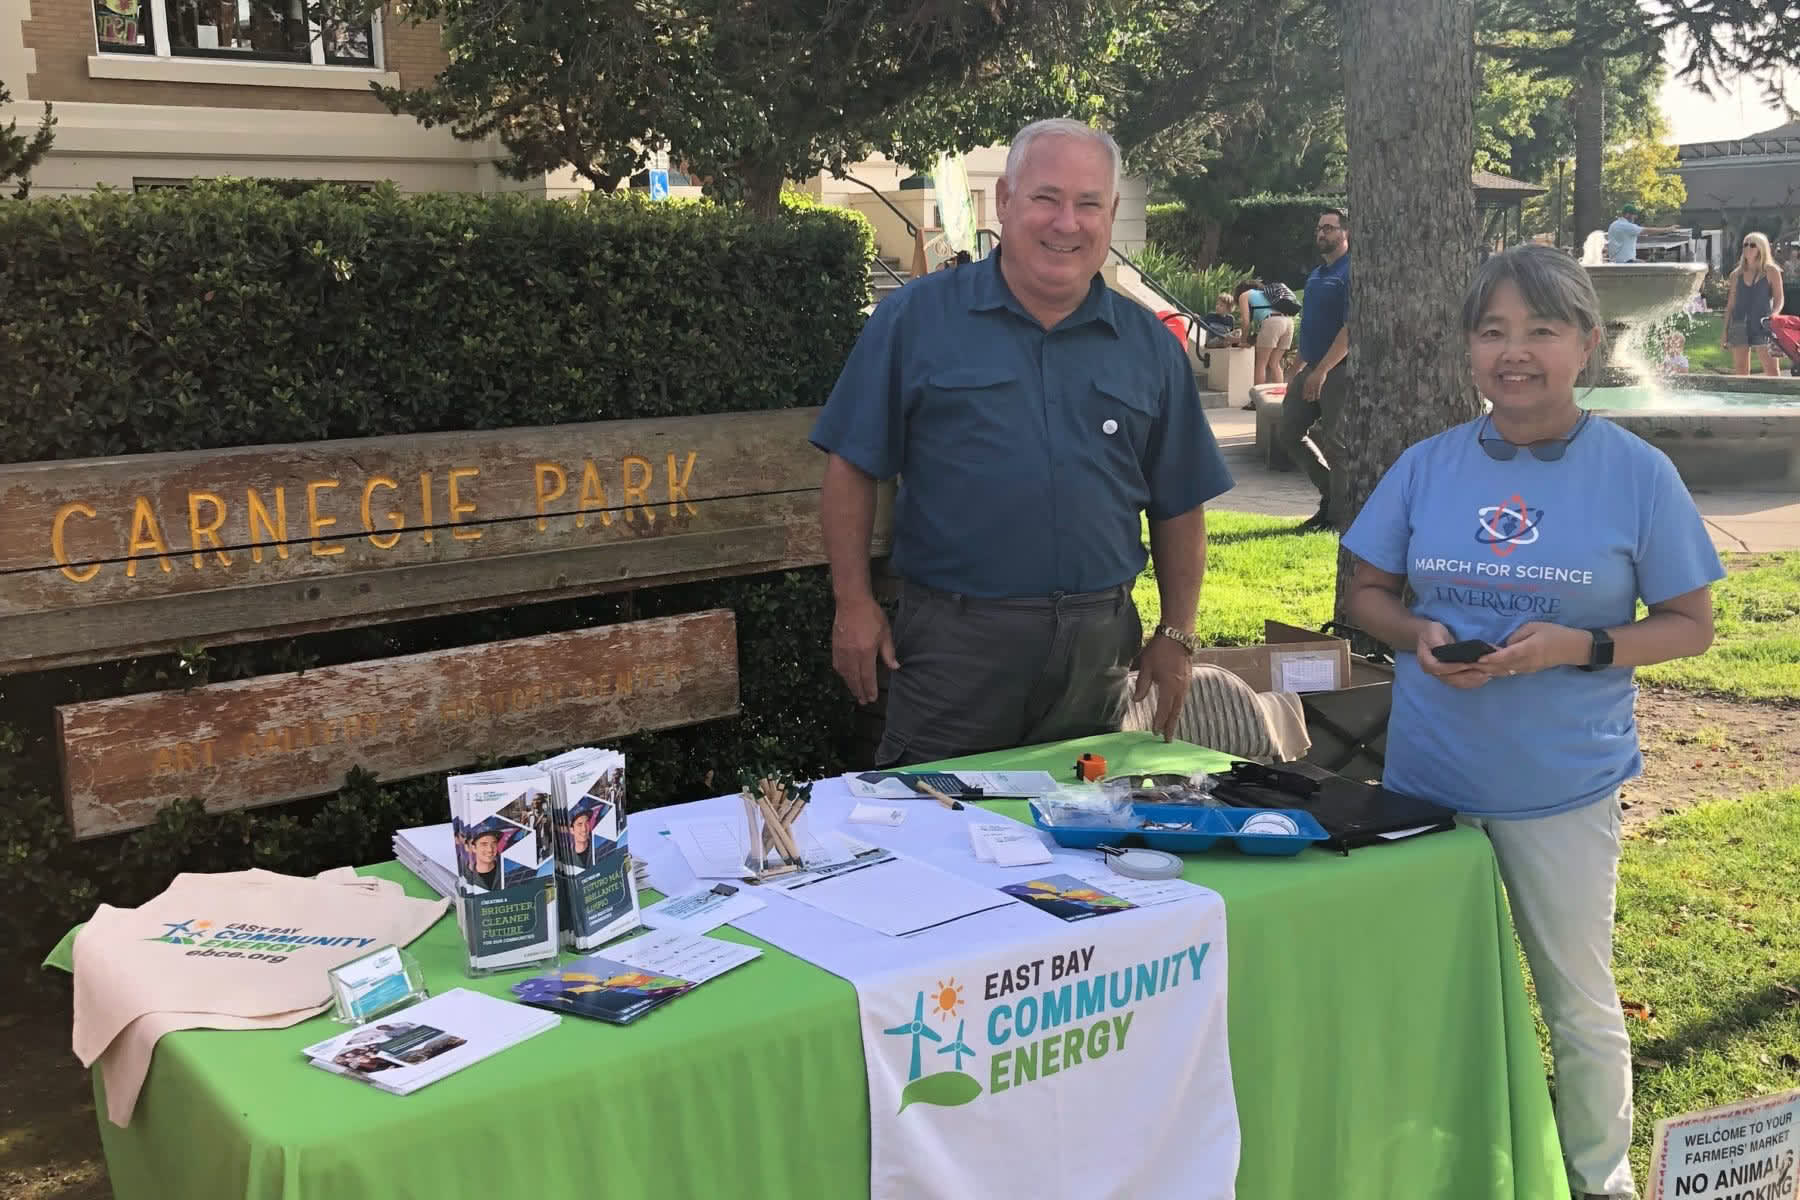 Two volunteers at a booth at a Livermore event